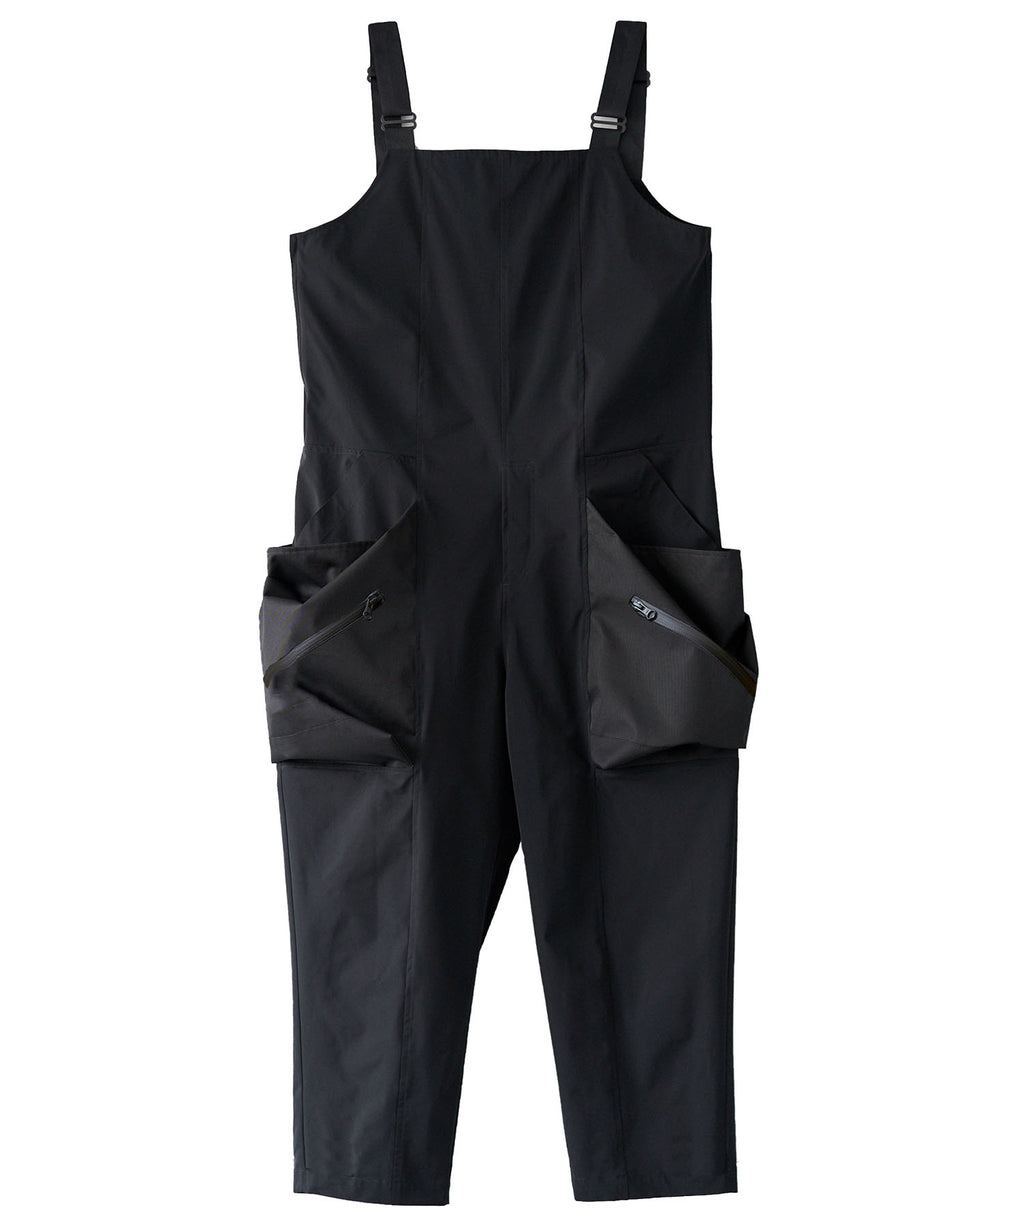 [PRE-ORDER] TROVE / BIG POCKET OVERALL ( TYPE : ACTIVE ) / BLACK